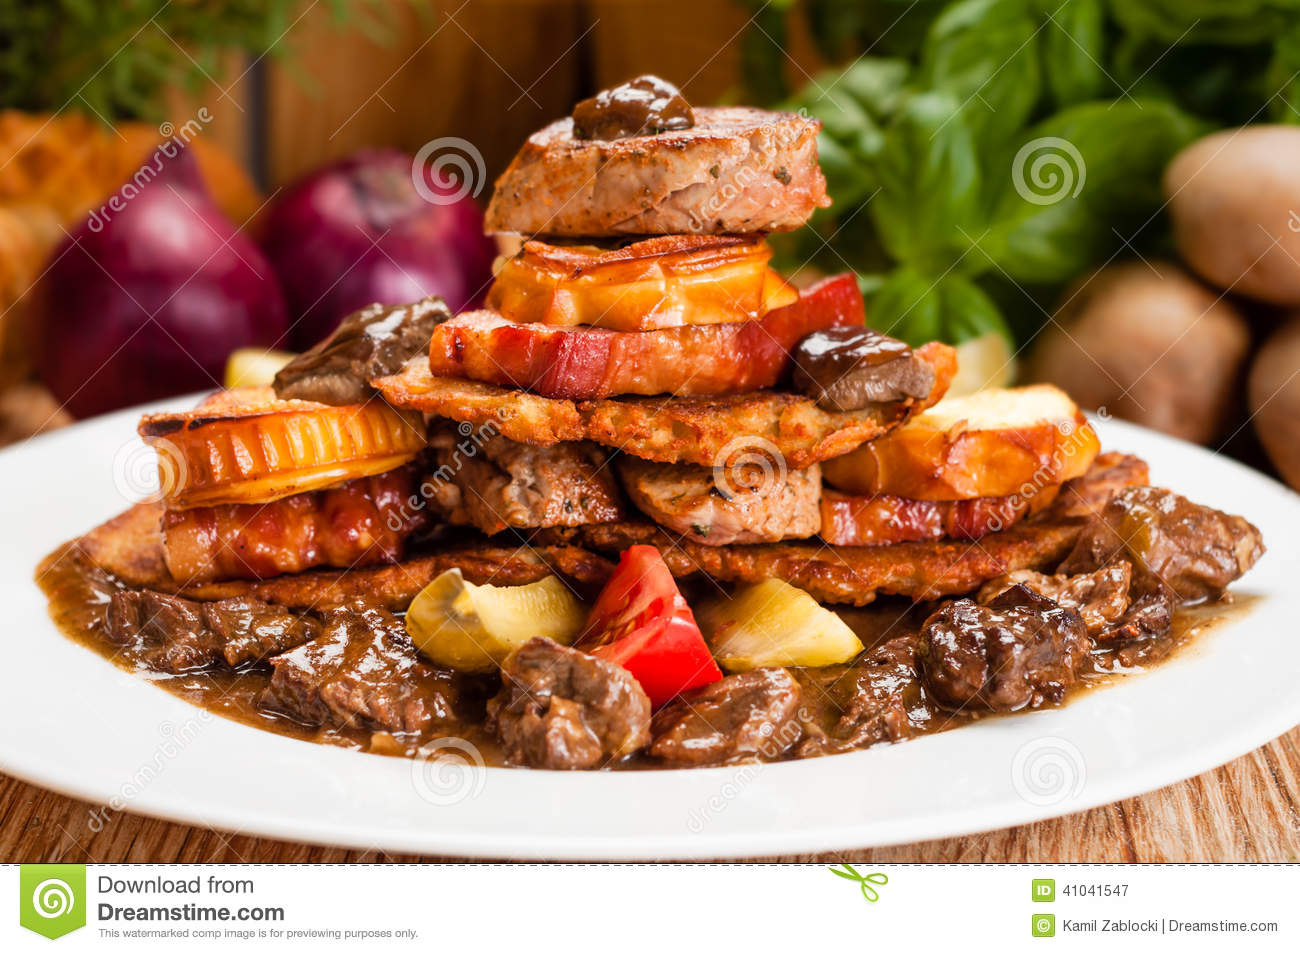 Greasy Unhealthy Food Stock Photo - Image: 41041547